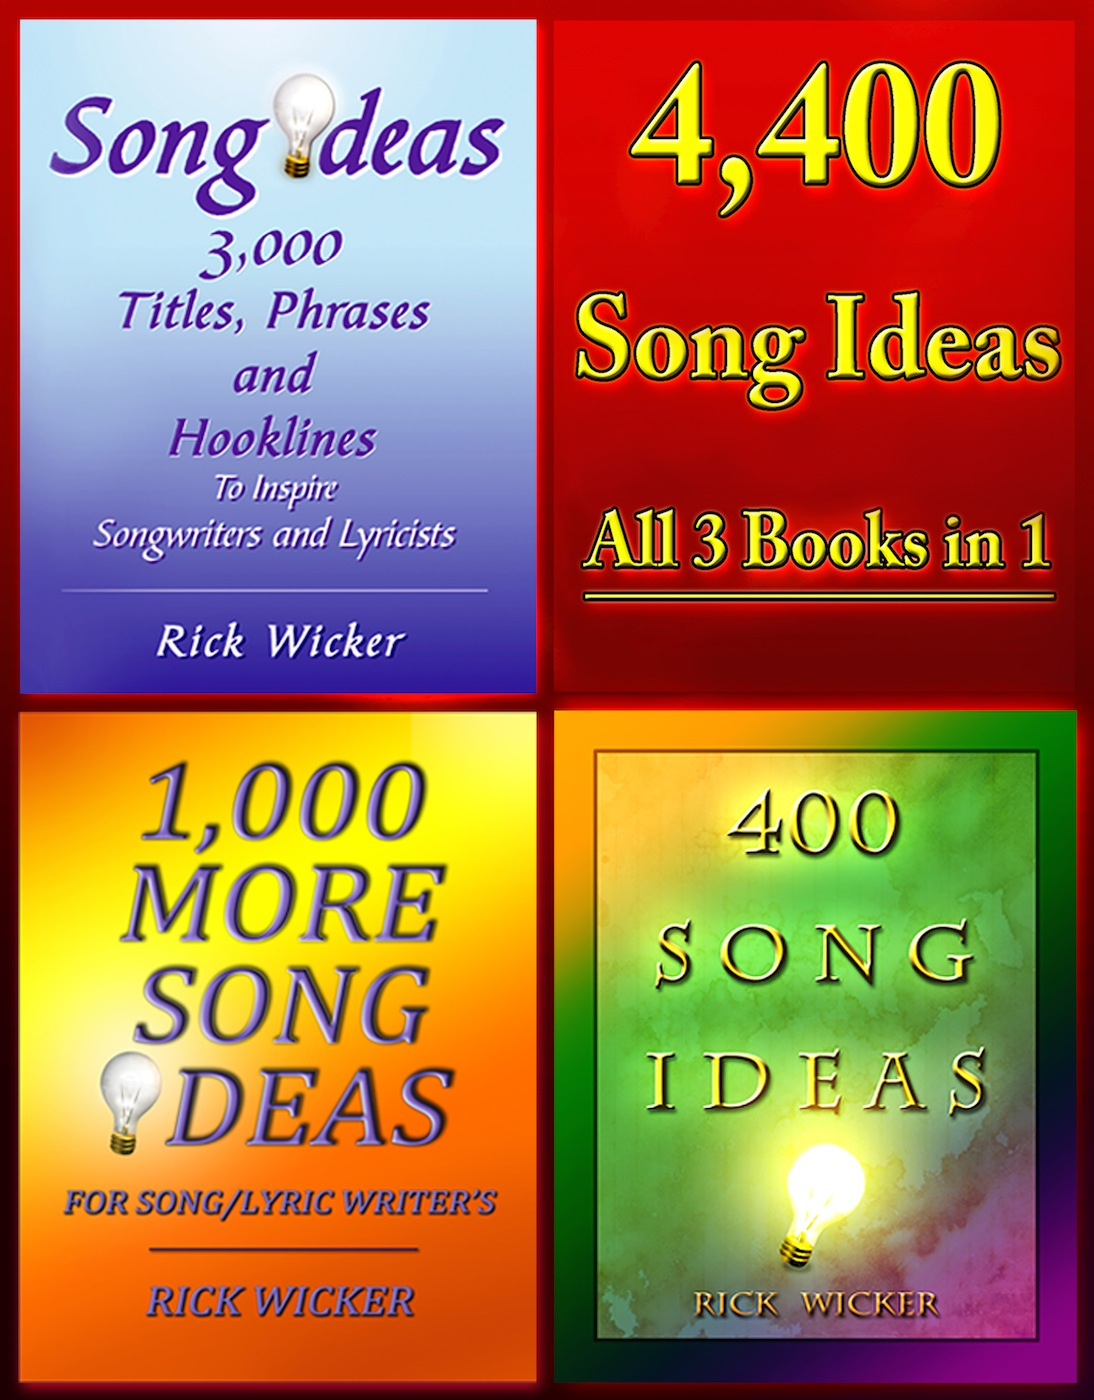 4,400 Song Ideas: All 3 Books in 1 By: Rick Wicker